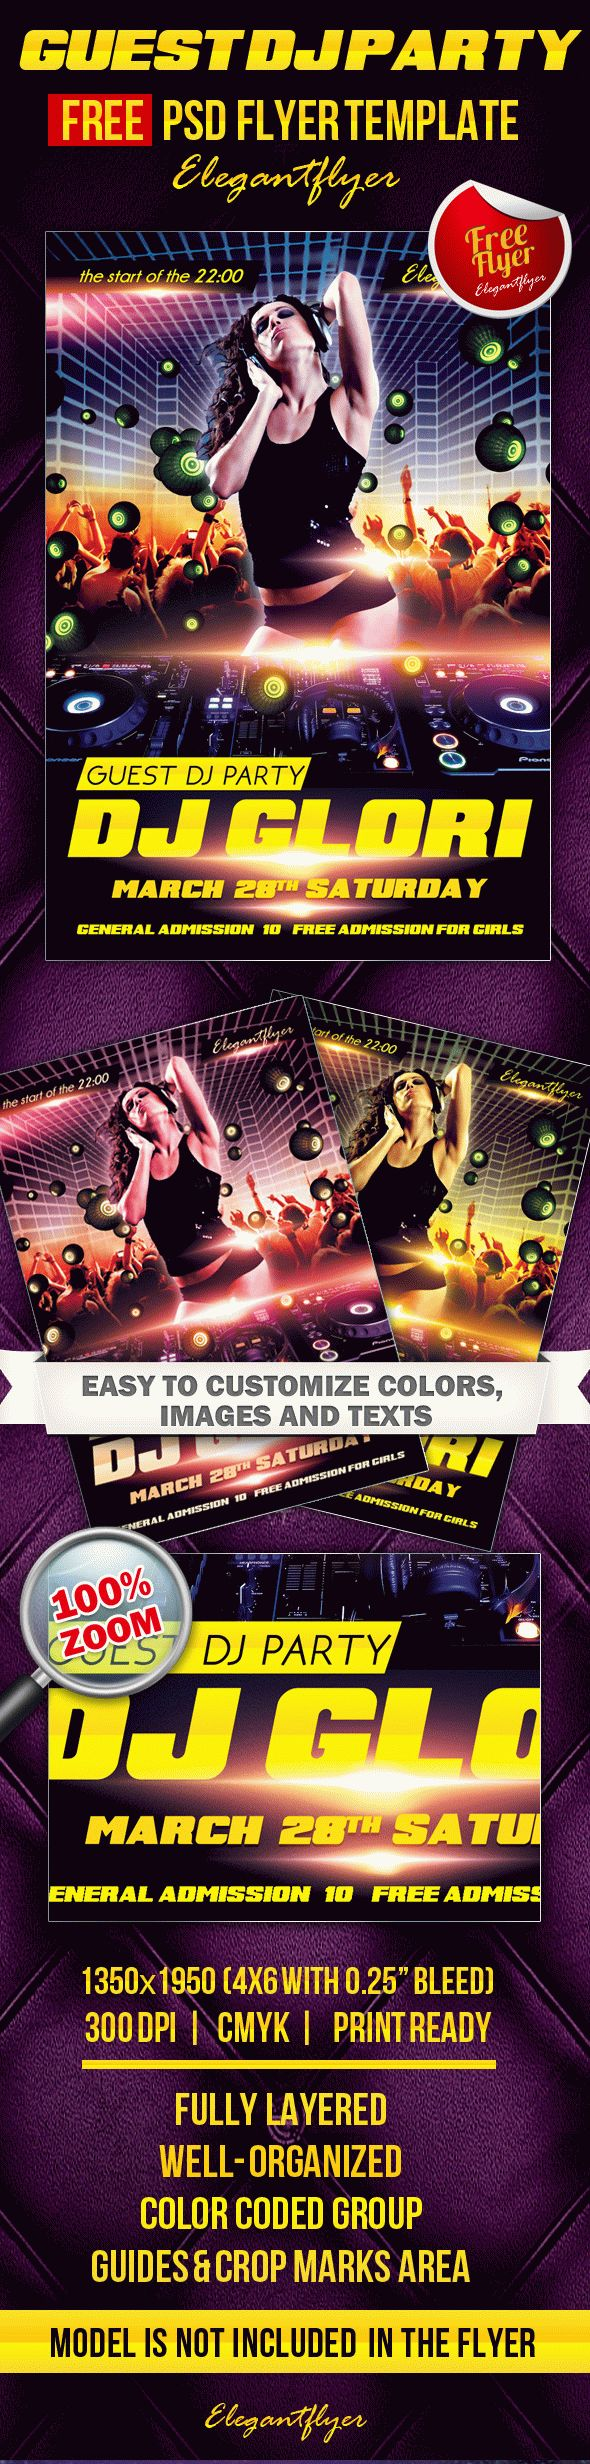 Guest Dj Party 3 – Club and Party Free Flyer PSD Template